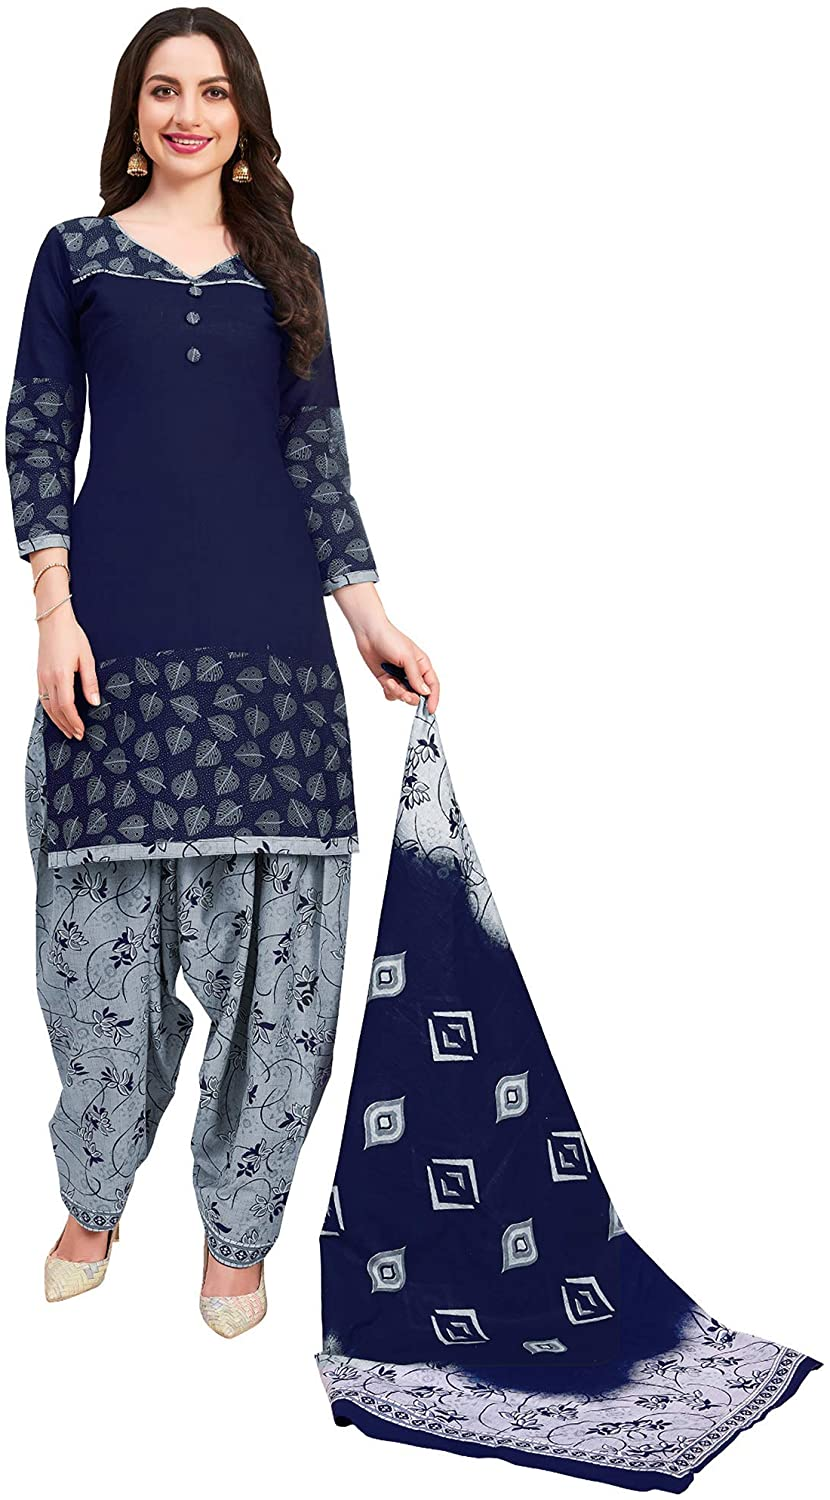 Women's Blue Pure Cotton Printed Unstitched Salwar Suits with Dupatta Dress Material Indian Ethnic Wear for Girl